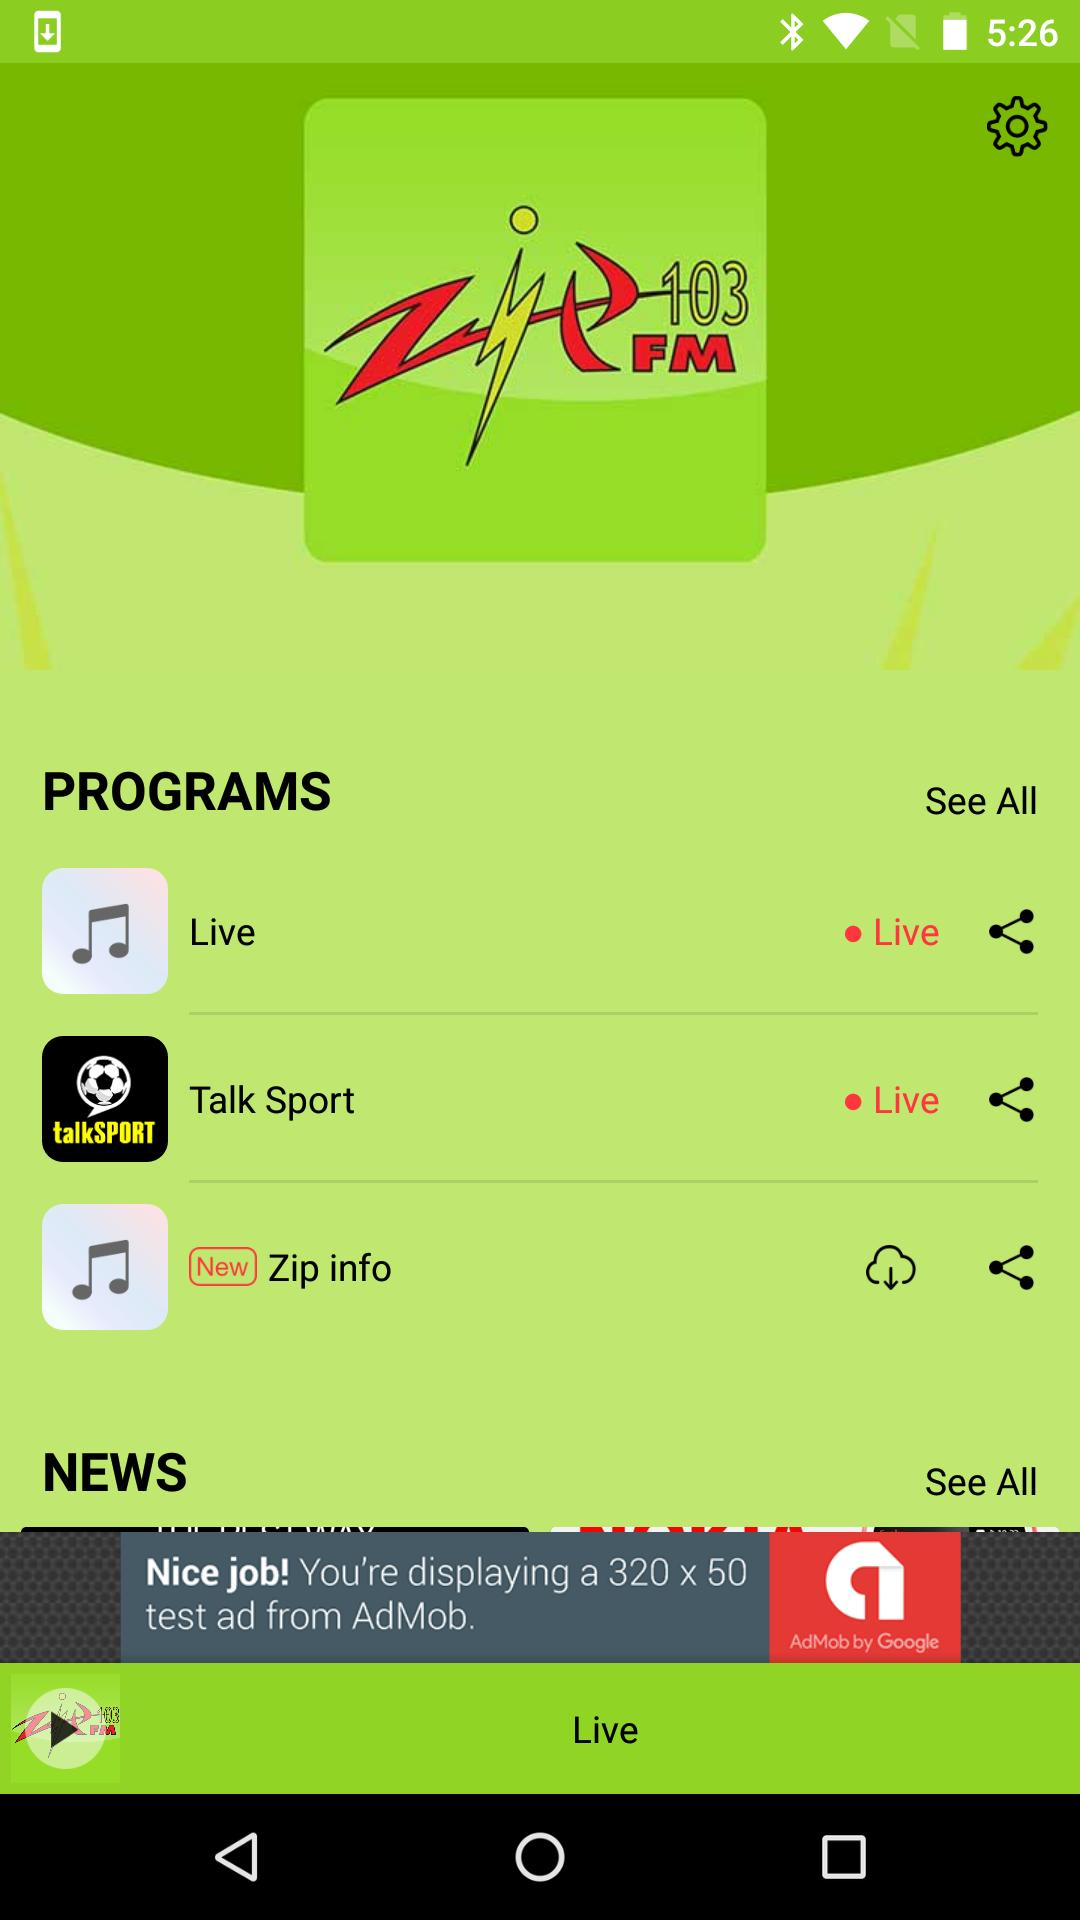 Zip FM 103 Jamaica for Android - APK Download